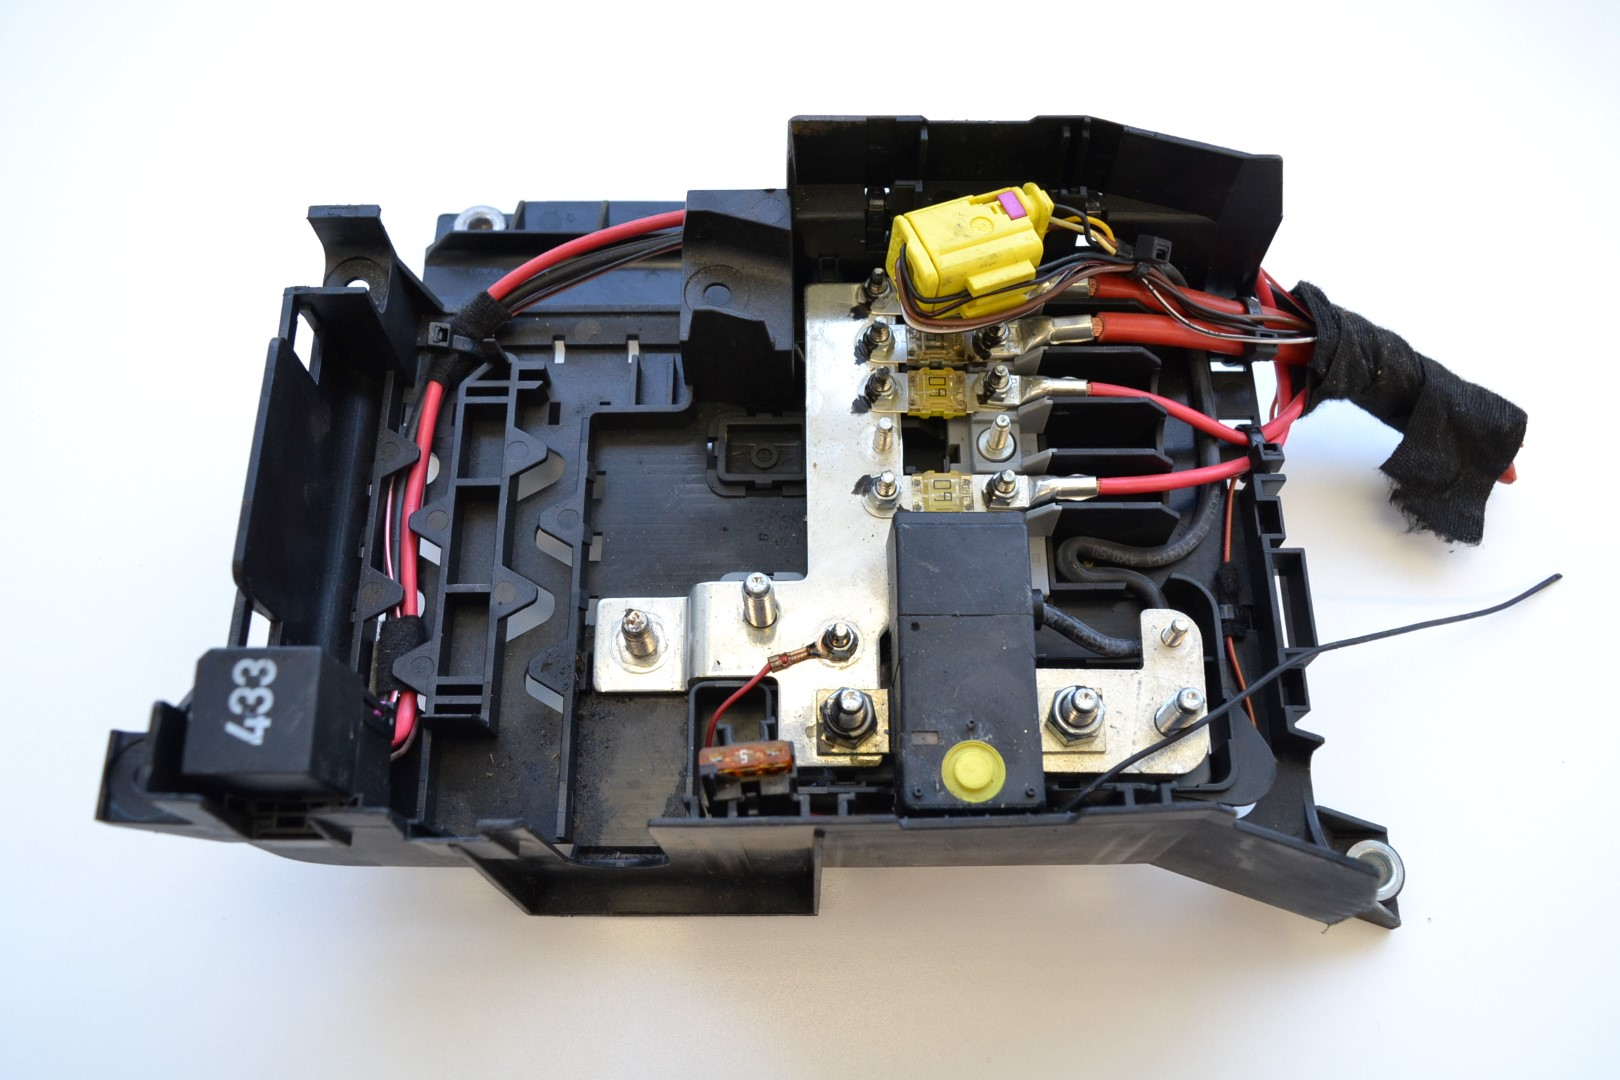 hight resolution of details about volkswagen vw touareg 2 5 r5 tdi 2006 rhd main fuse box engine bay 7l0937548